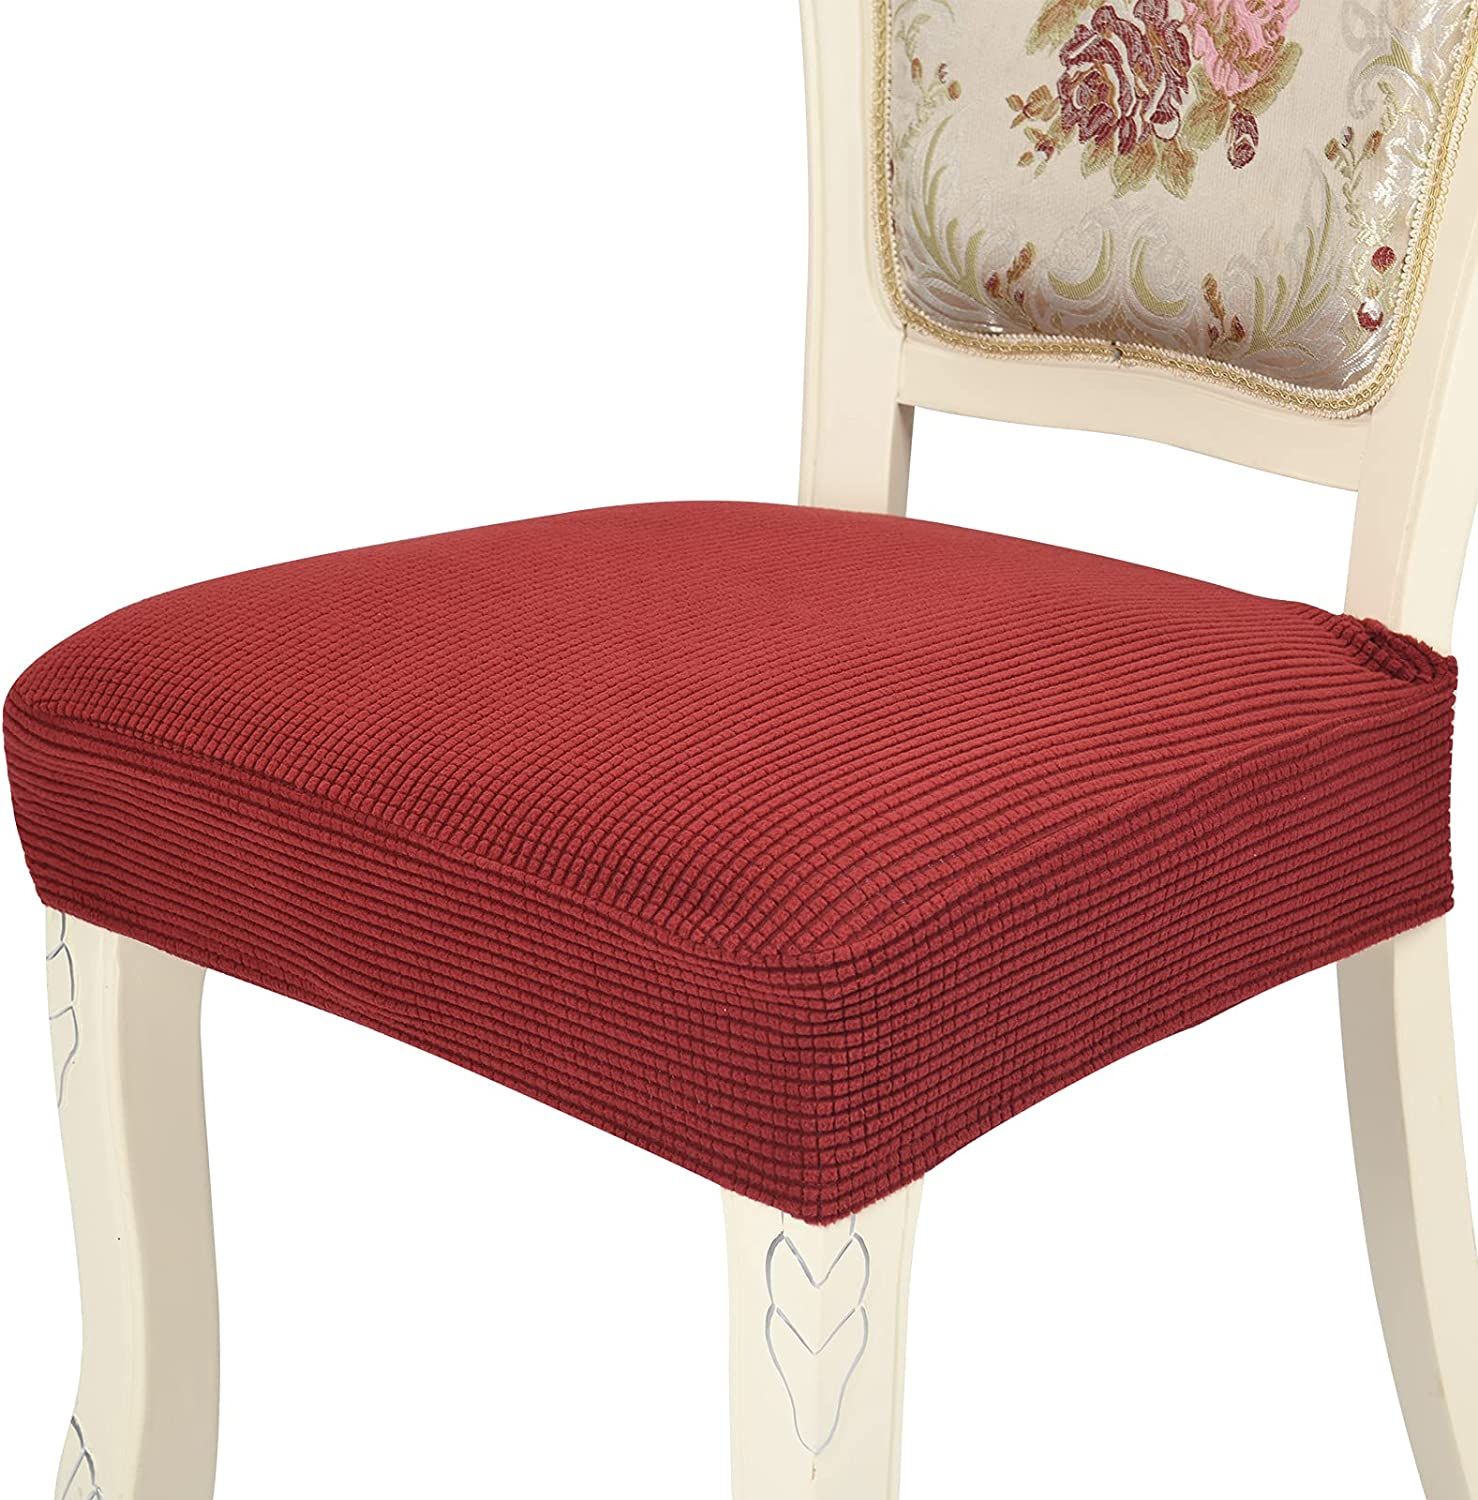 Chair Covers San Antonio Mall Product for Dining Room Chairs Set Red Rear-Cover Wine of 6